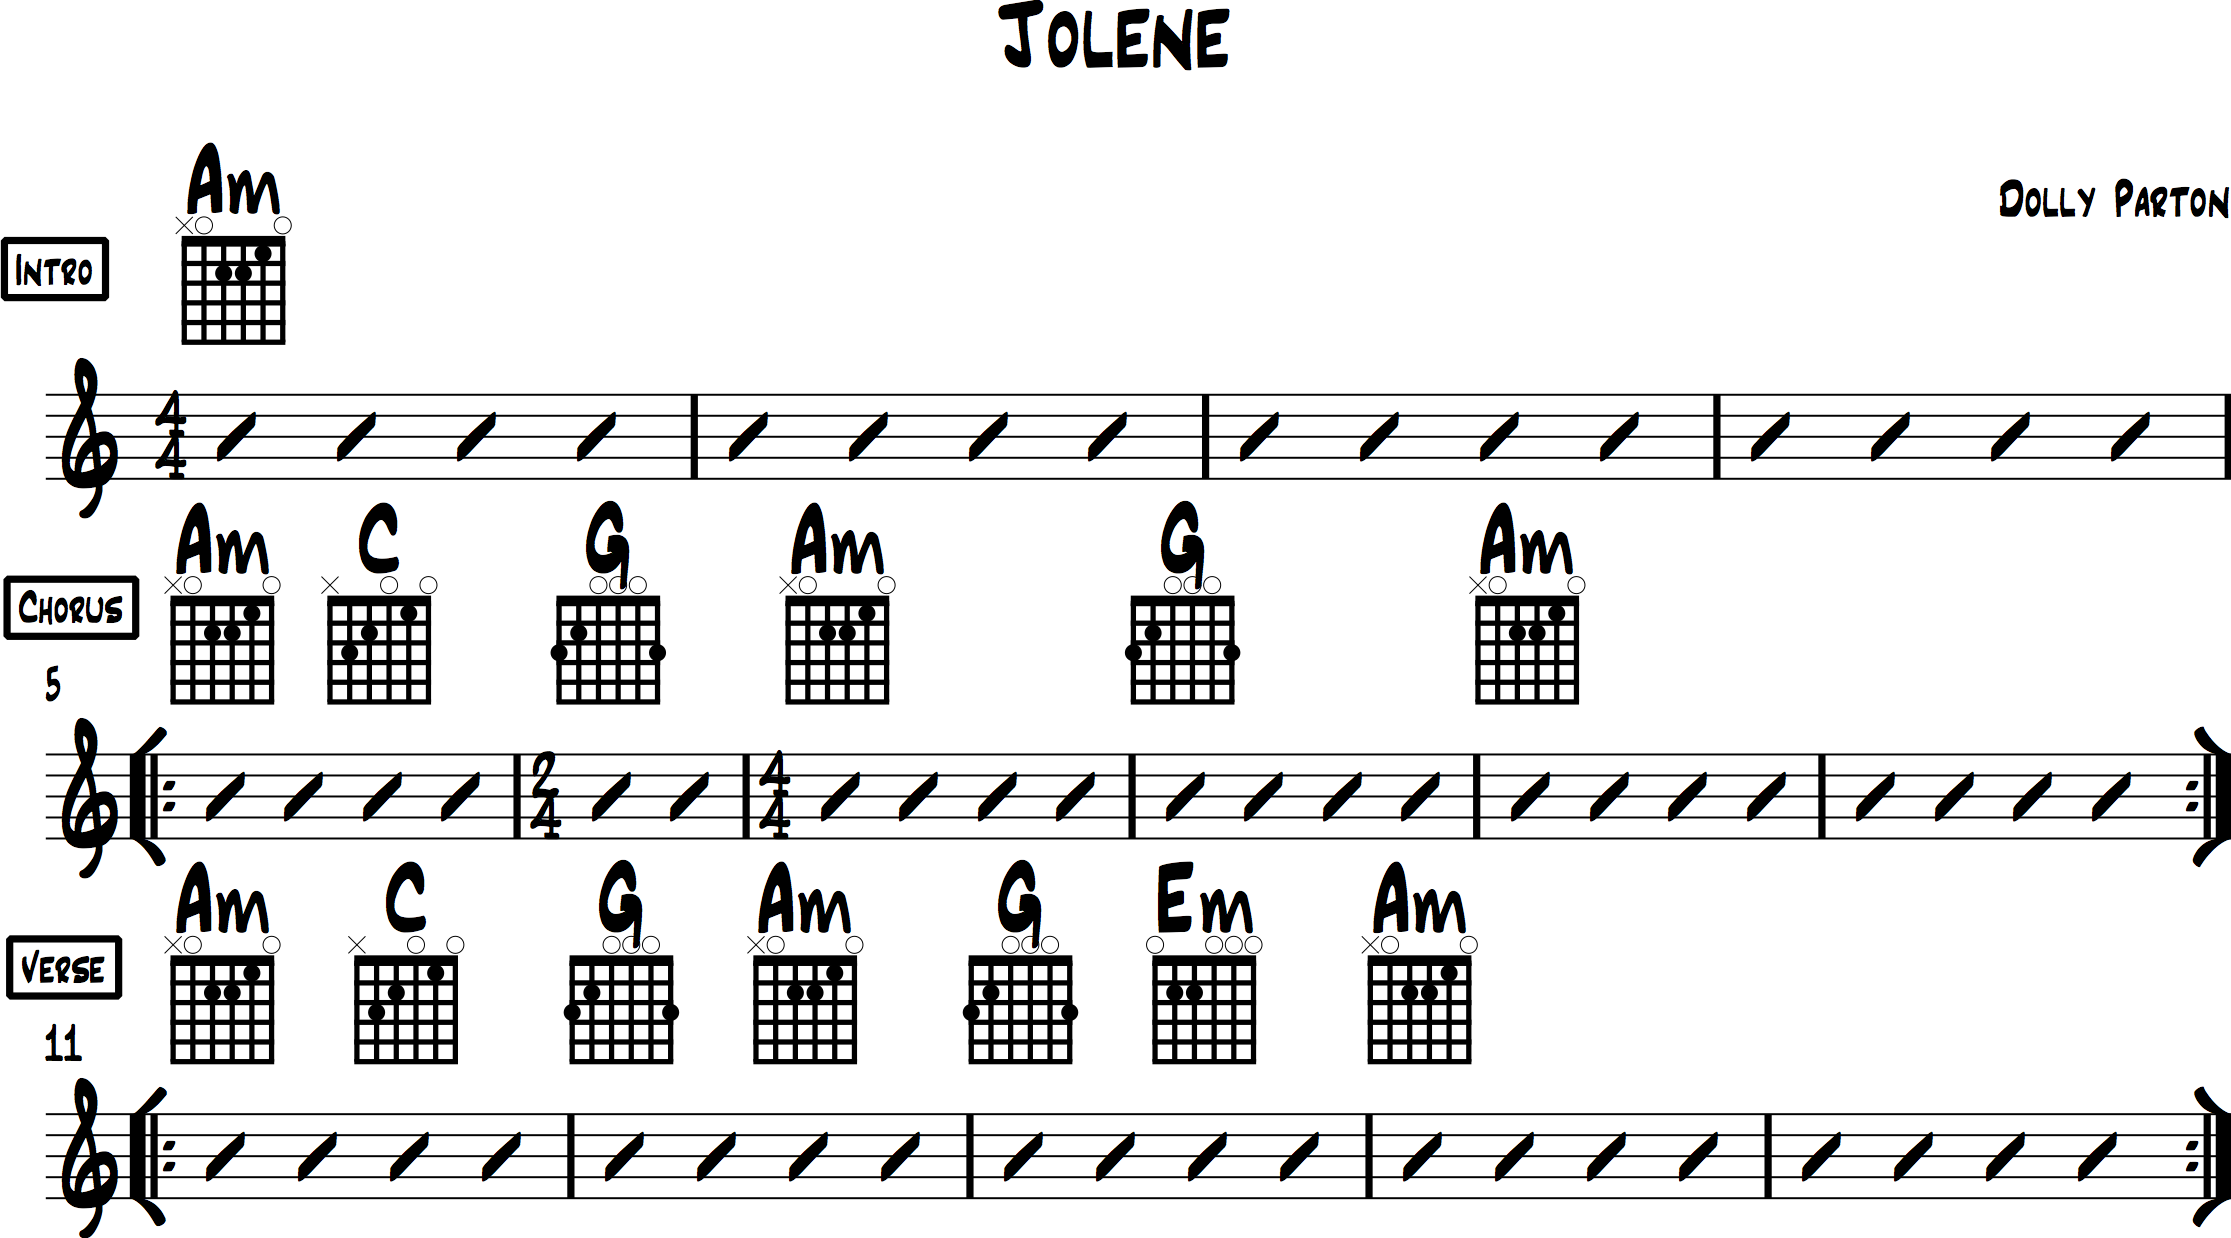 Jolene Chords for Acoustic Guitar (Dolly Parton)